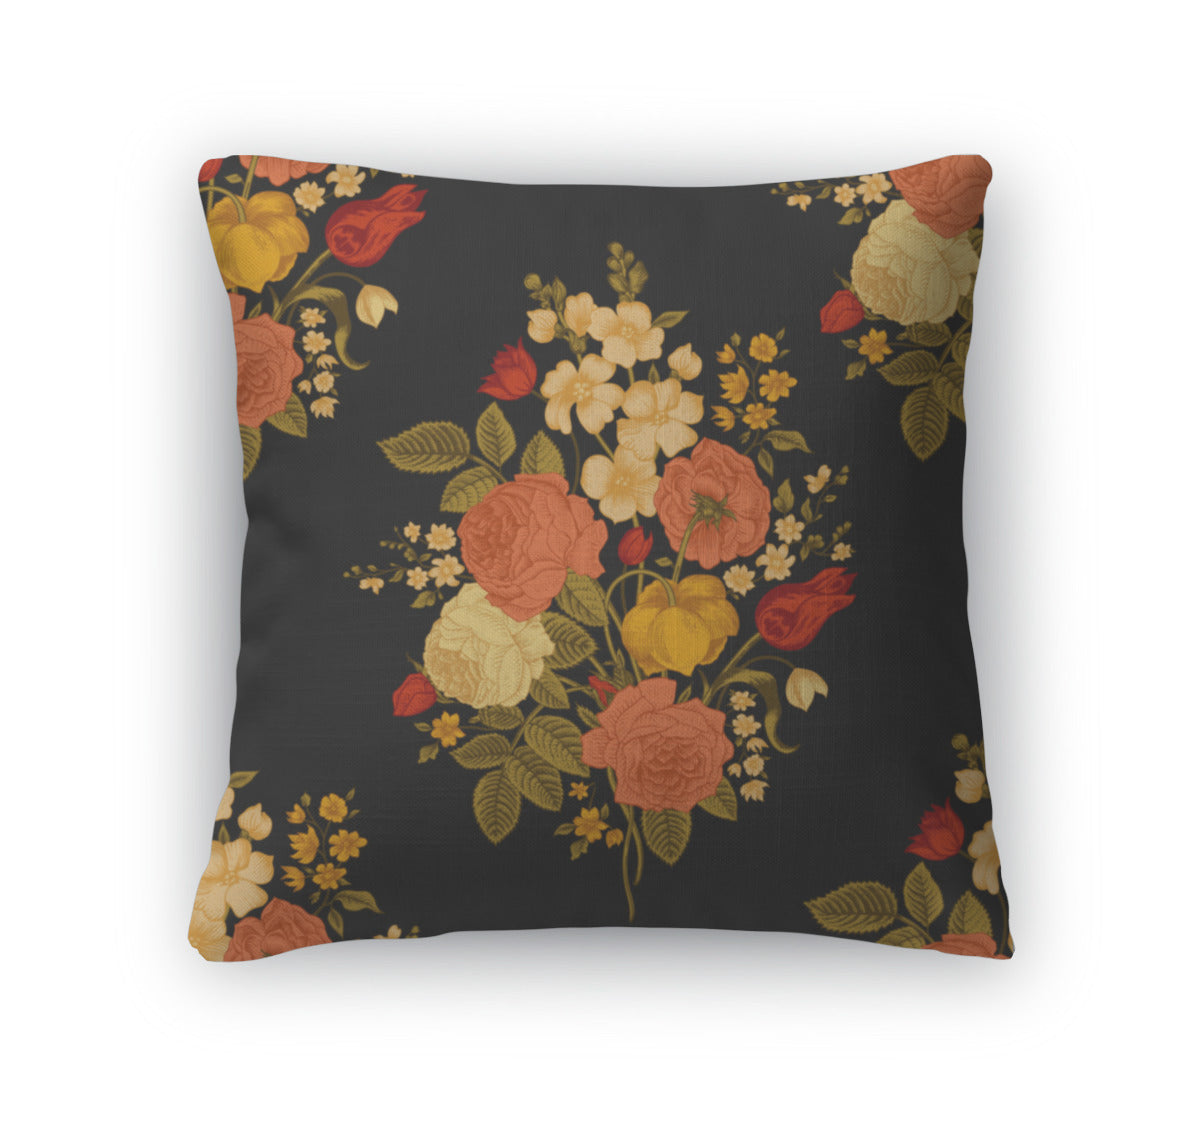 Throw Pillow, Vintage Pattern With Victorian Bouquet - fashionbests